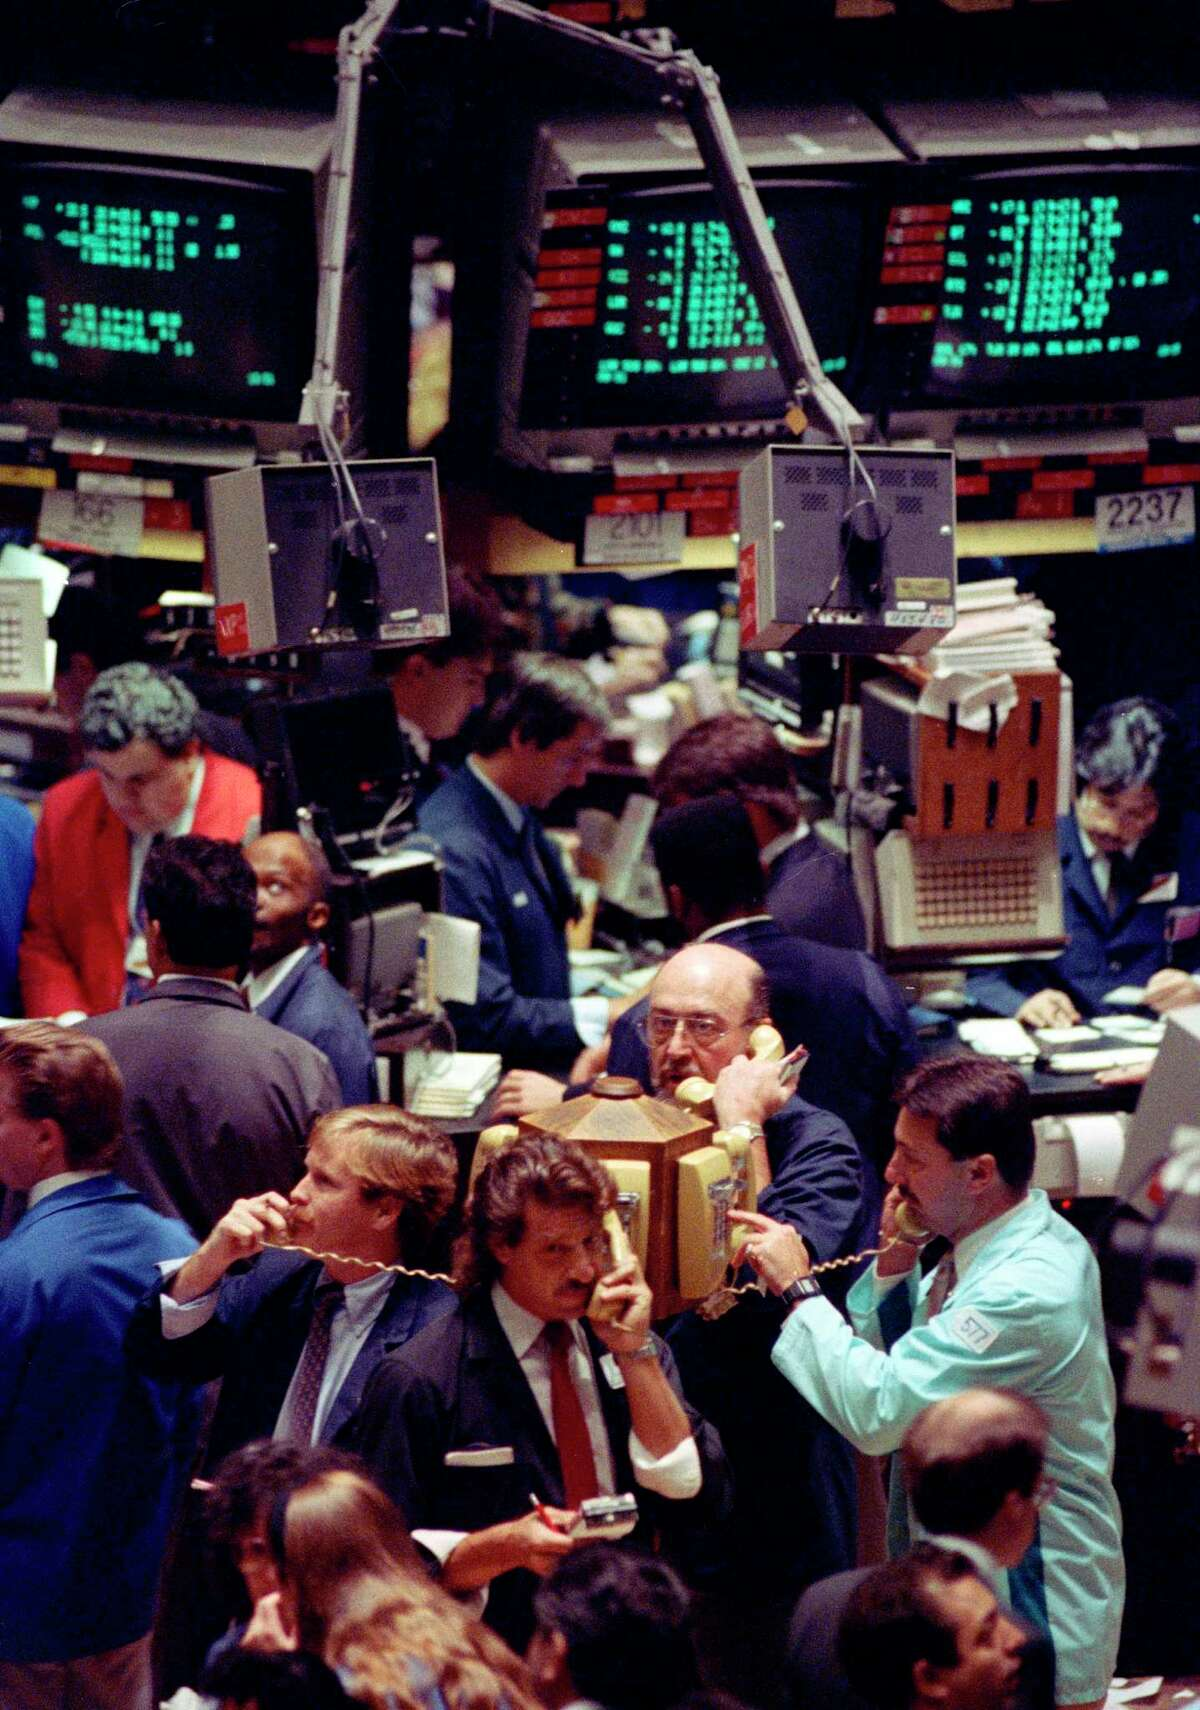 FILE- In this Oct. 5, 1990, file photo traders on the New York Stock Exchange. In 1990, the S&P 500 declined 19.92 percent from July 16 until Oct. 11. (AP Photo/Richard Drew)